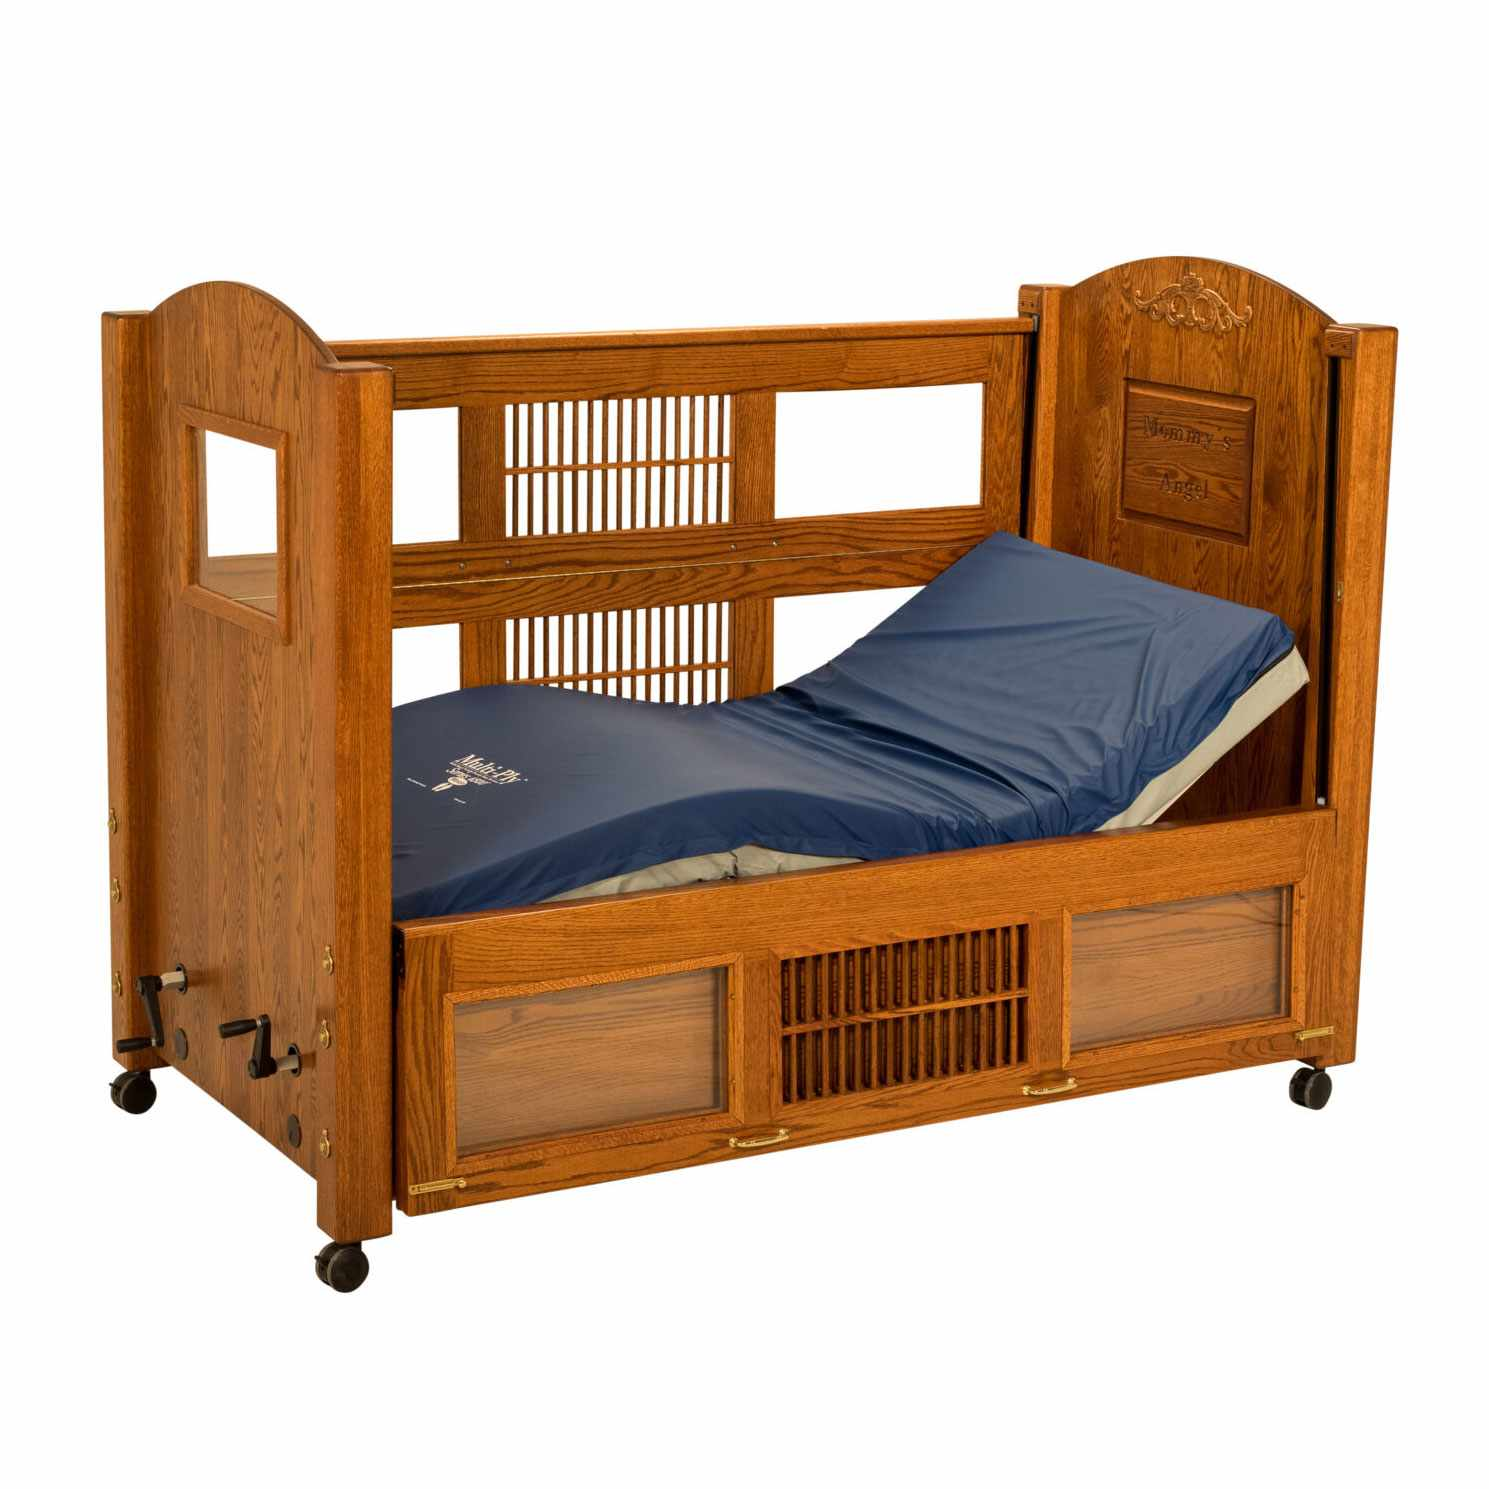 Dream series double size bed